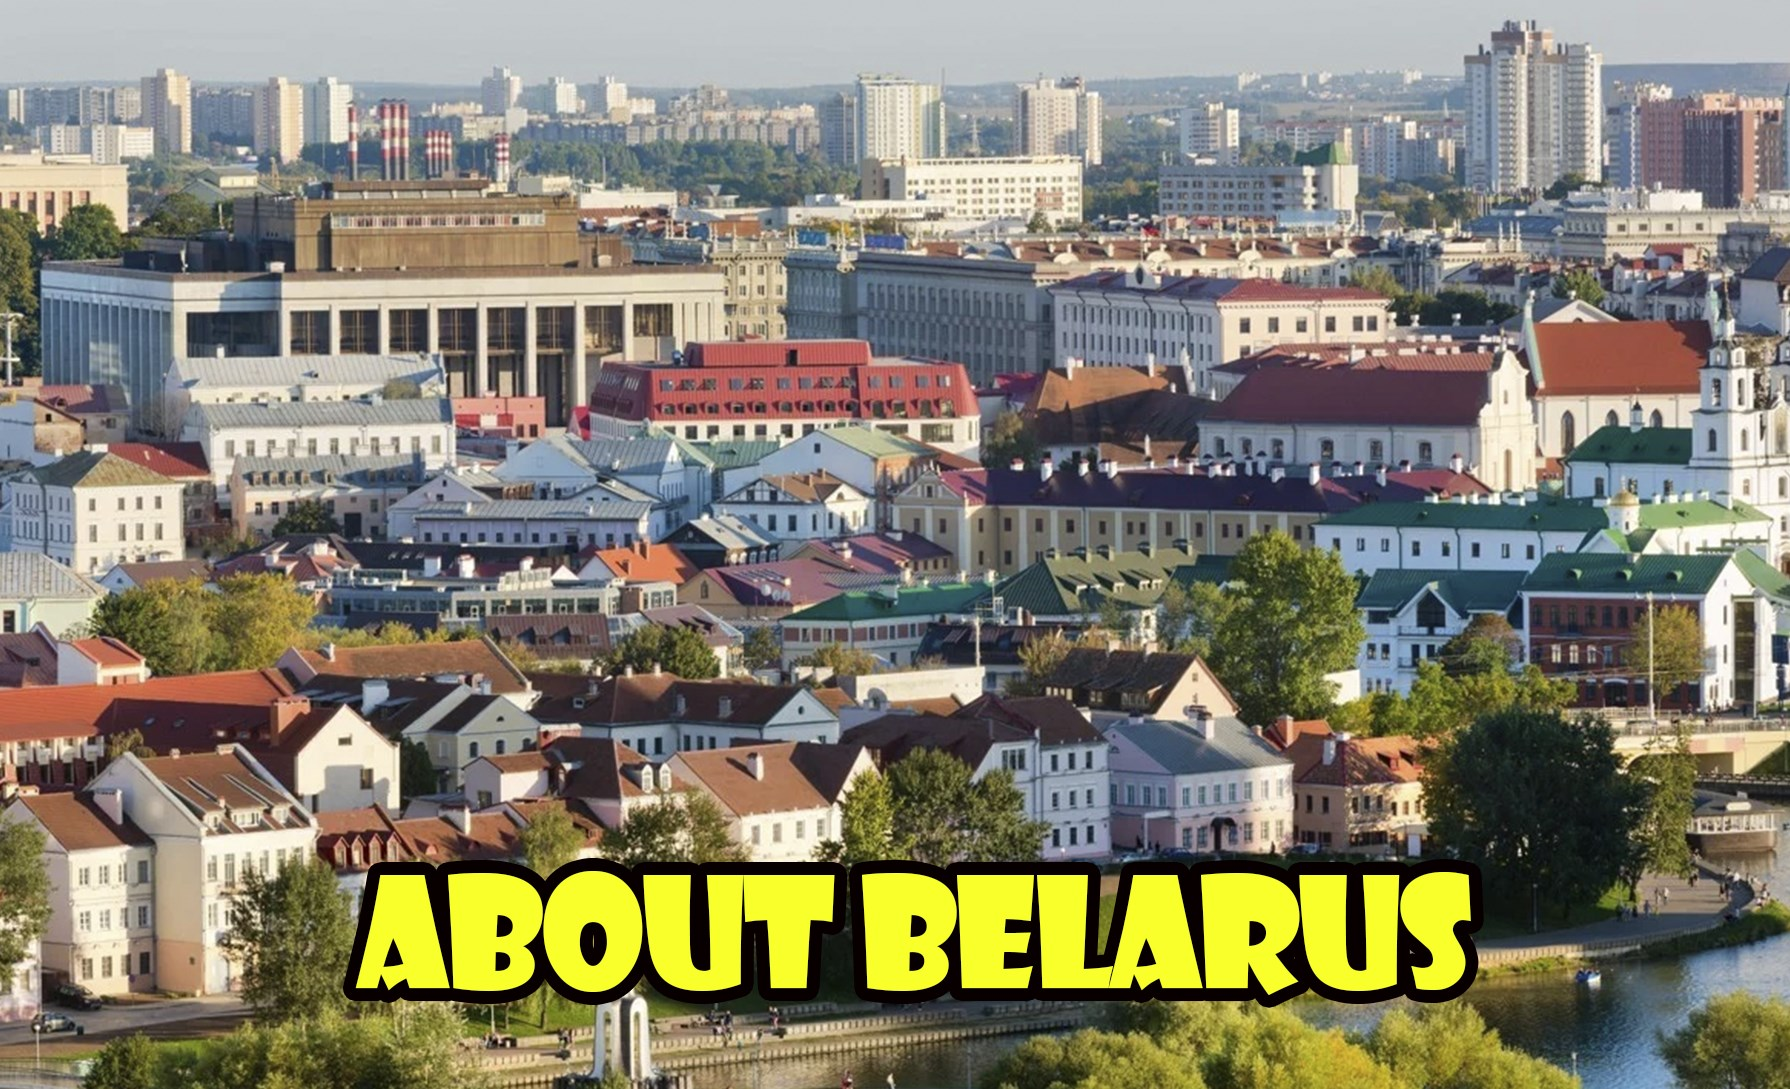 About Belarus